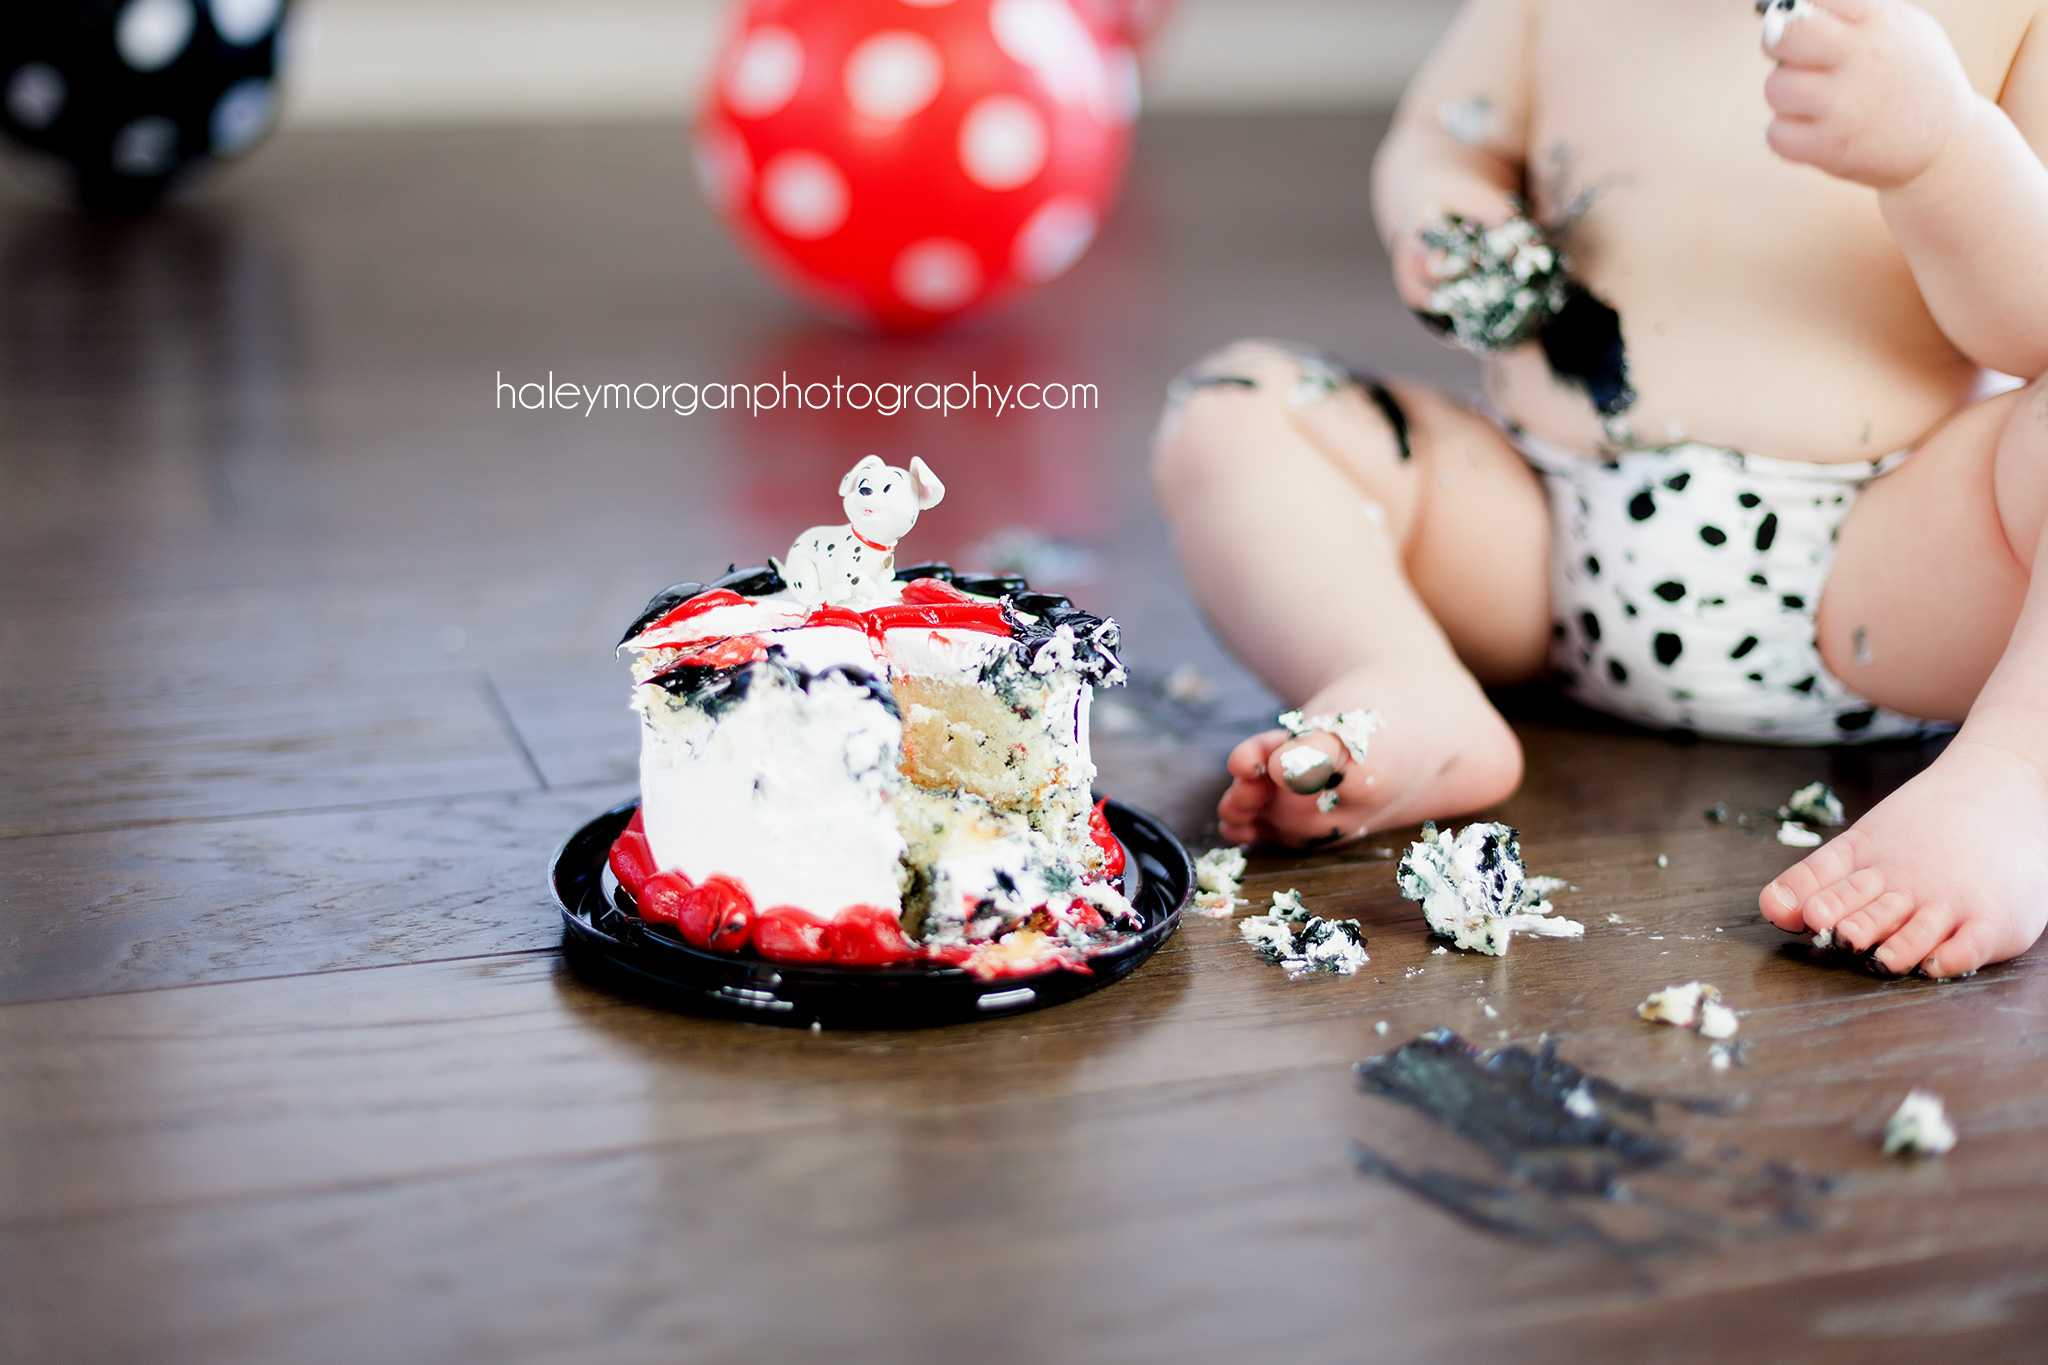 Denver Lifestyle Photographer, Denver Family Photographer, Denver Cake Smash, Cake Smash, Denver Photographer, Denver Milestone Photographer, Baby's 1st year, Denver Newborn Photographer, Haley Morgan Photography